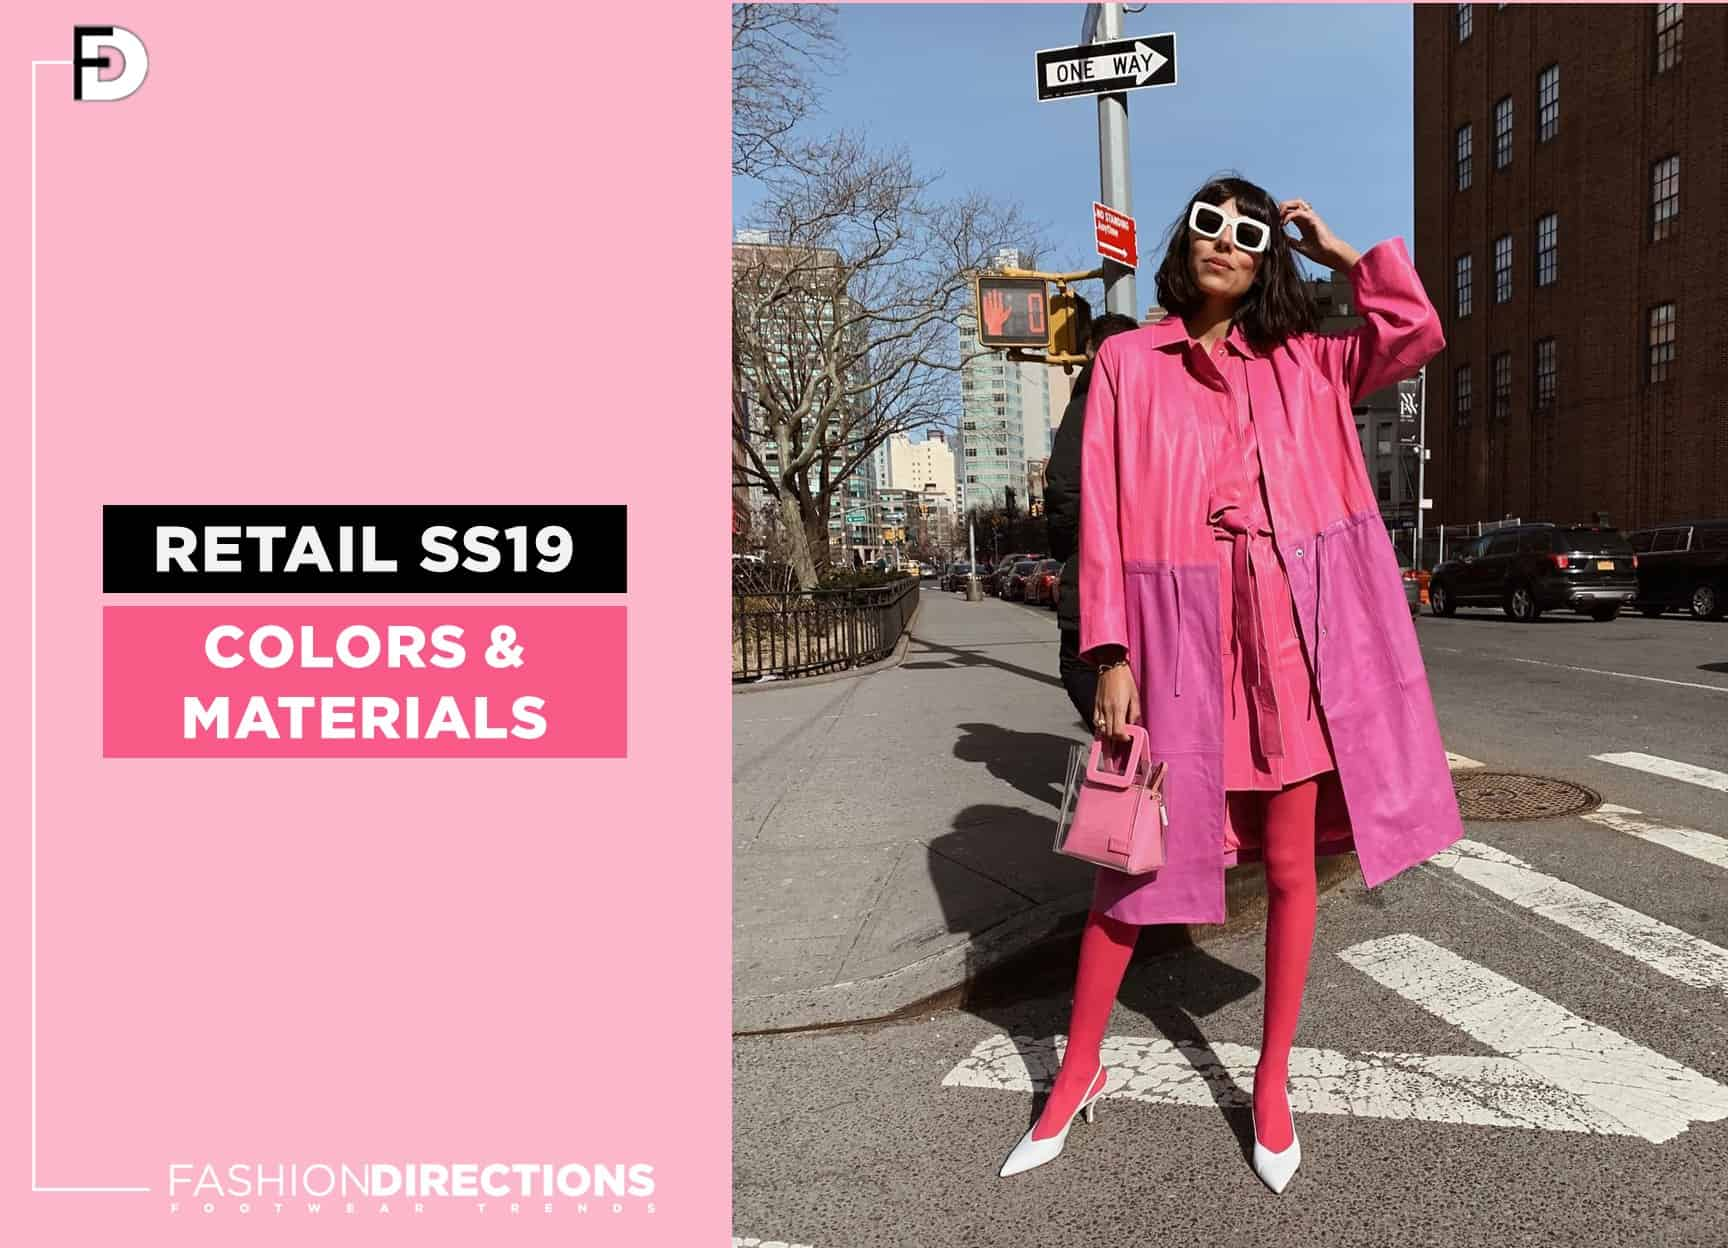 ss19 colors and materials in retail stores 1